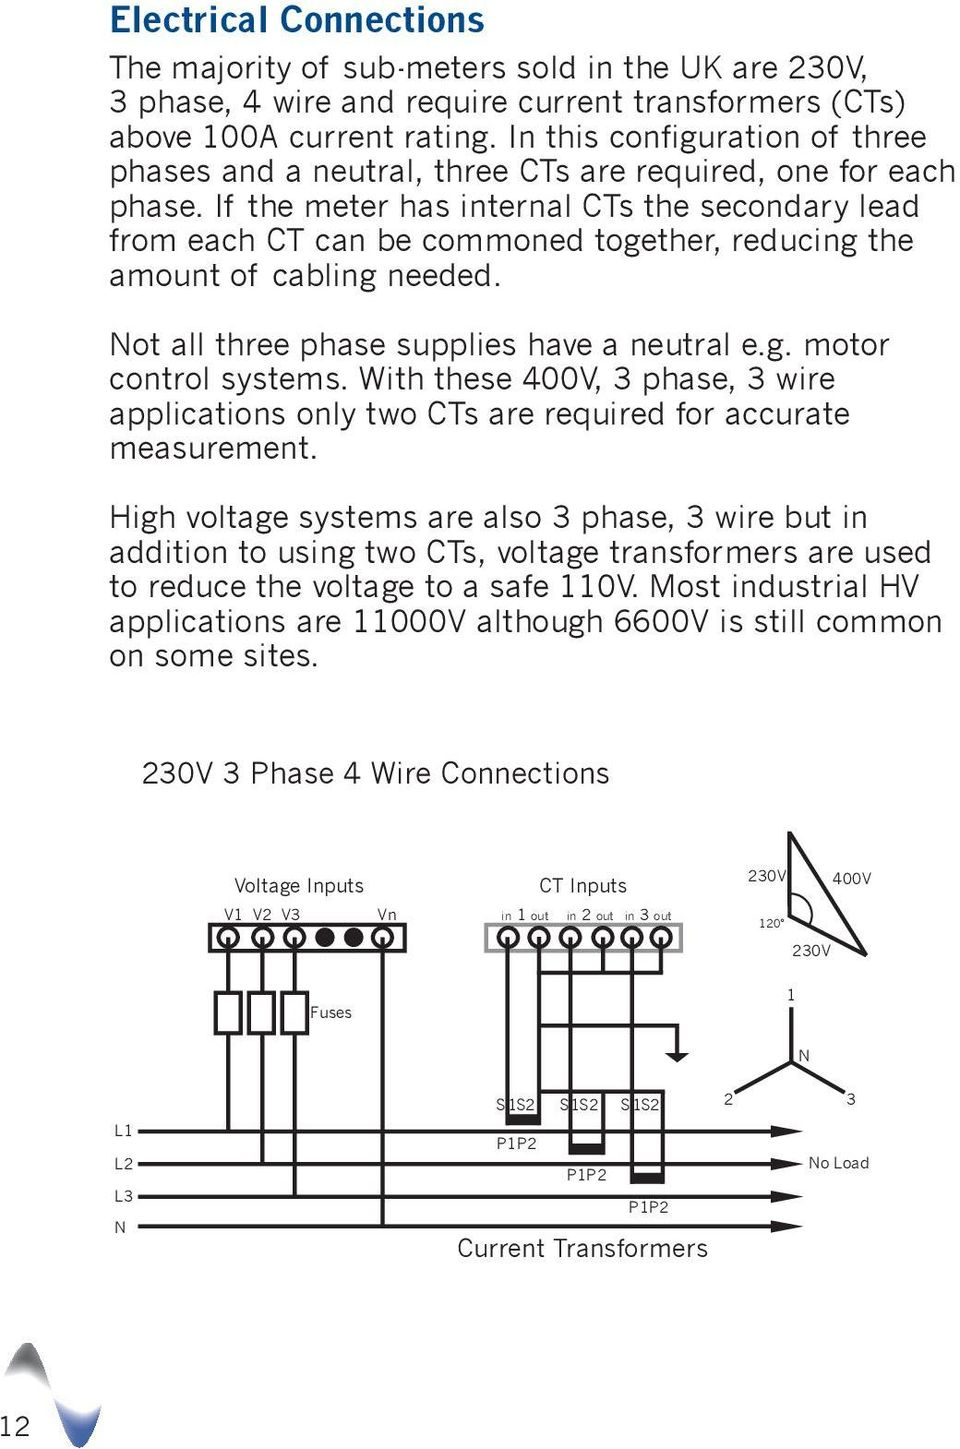 240 Volt 3 Phase Wiring Diagram For Cts And Meter Socket Ct Produced By Alan Ward Pdf If The Has Internal Secondary Lead From Each